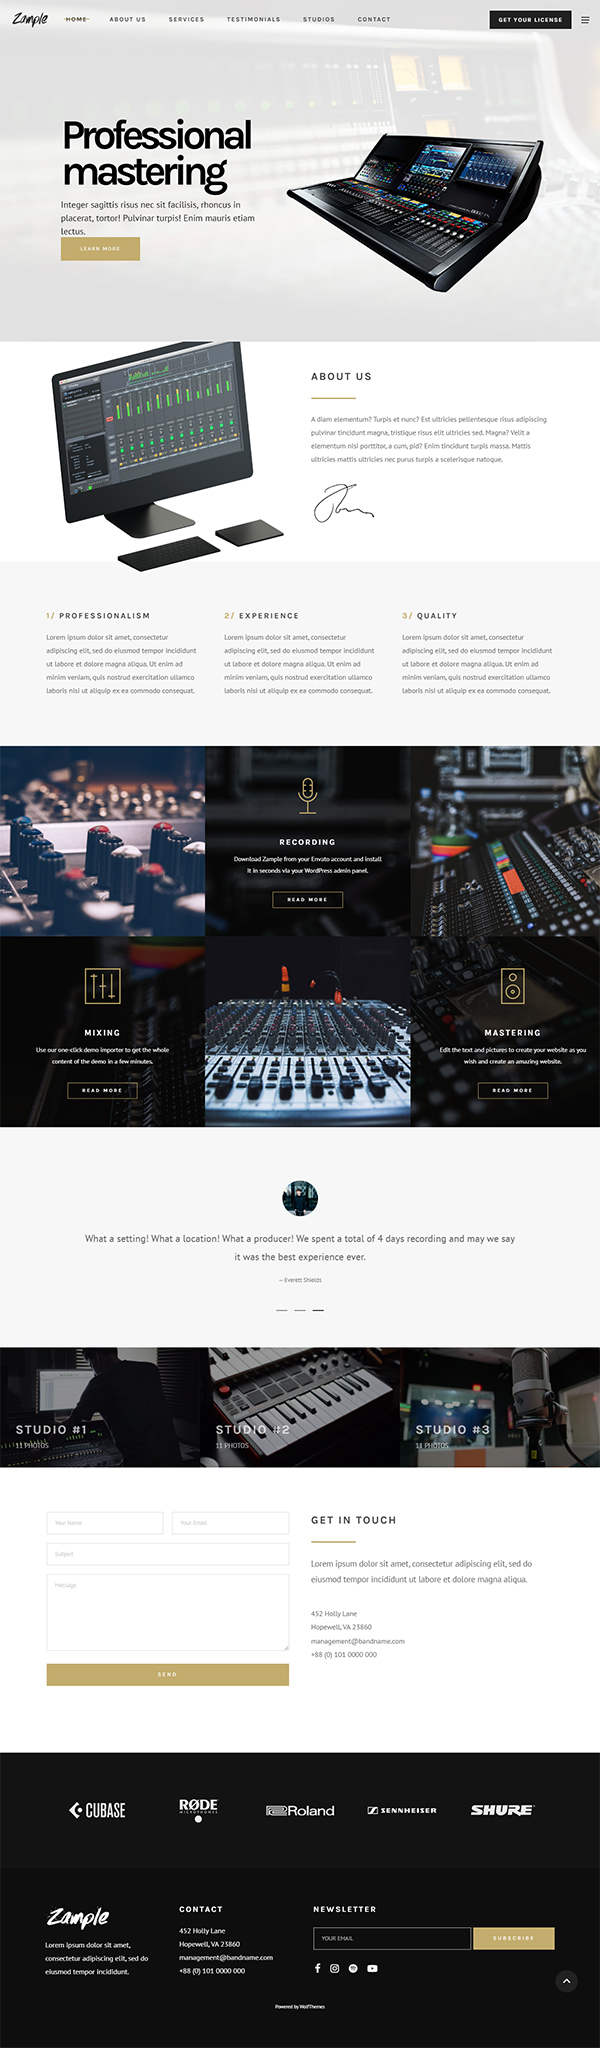 Zample - A Fresh One-Page Music WordPress Theme